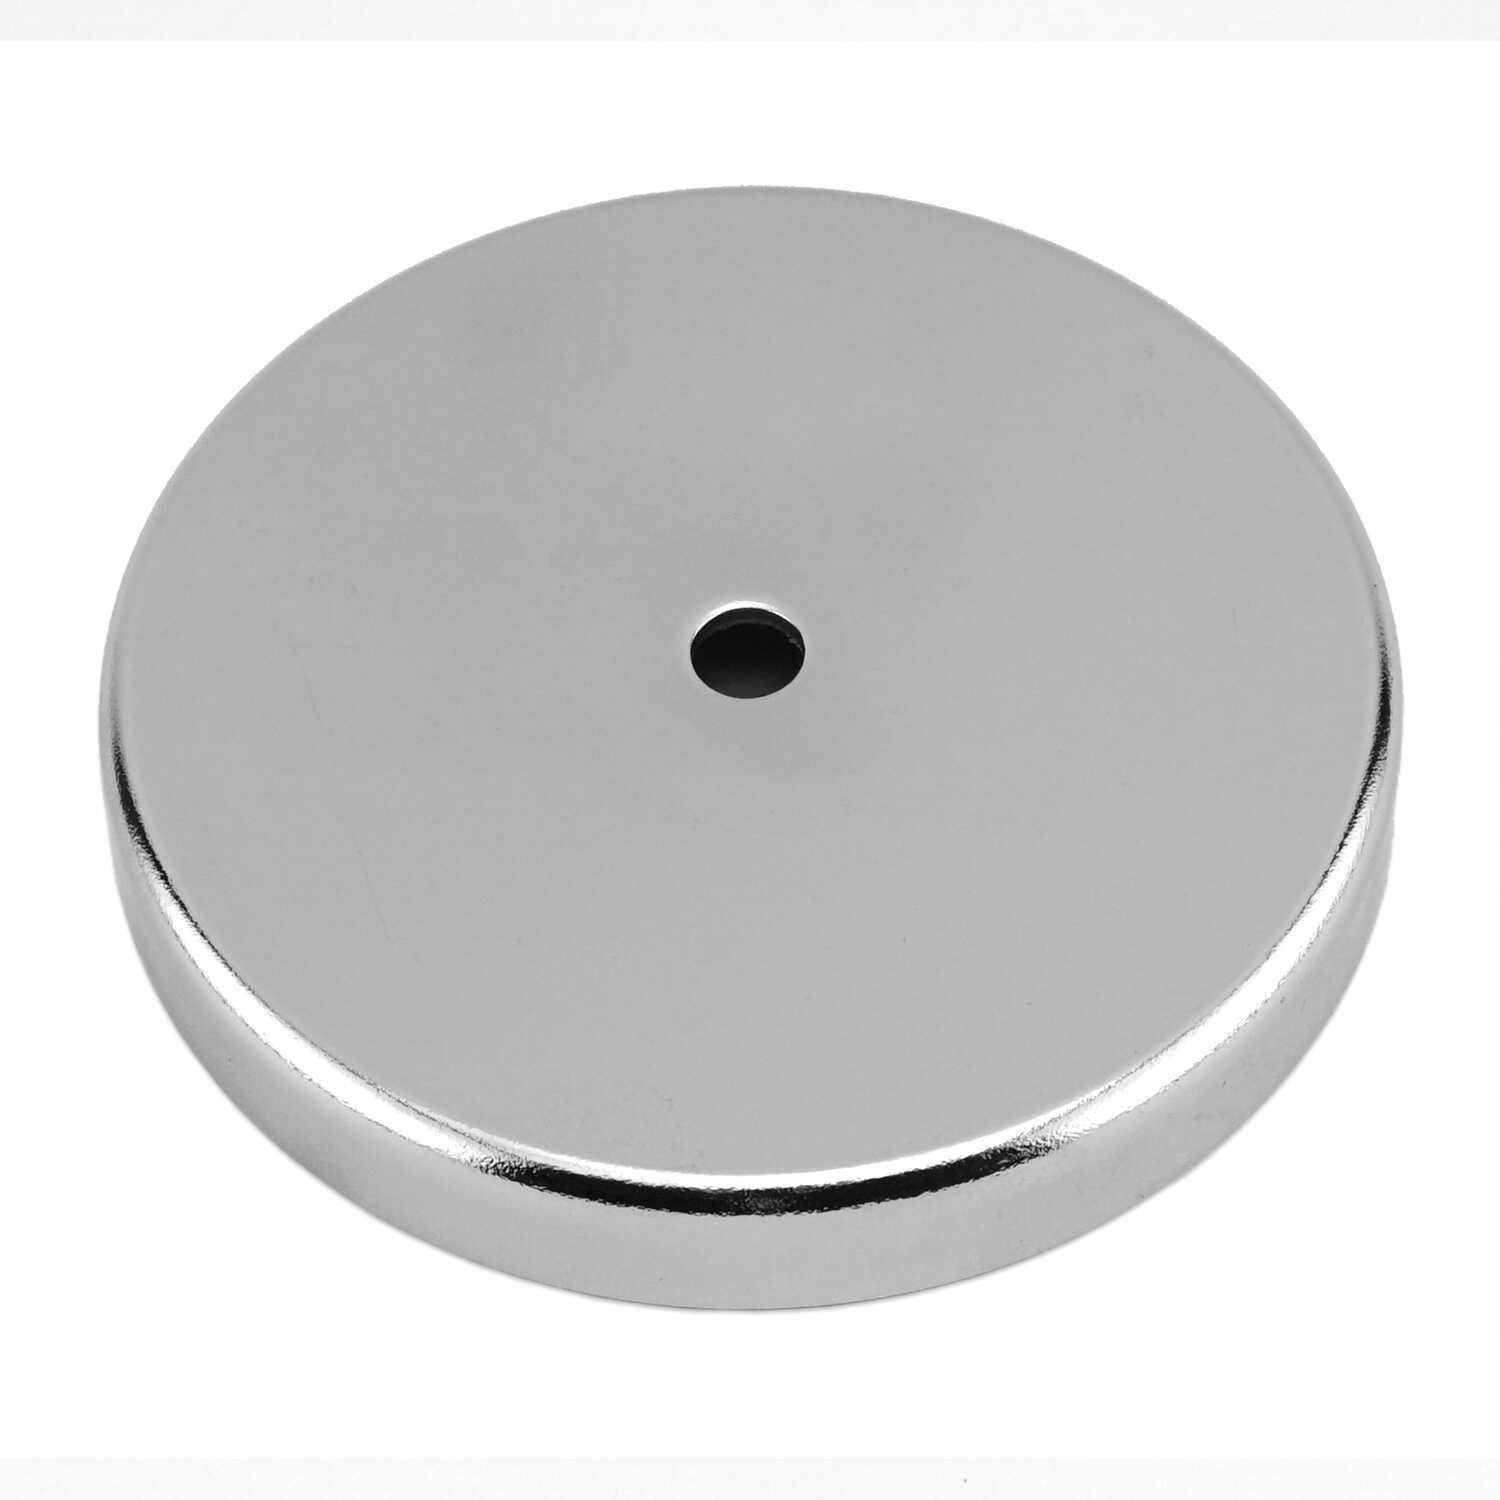 Master Magnetics  .18 in. Ceramic  11 lb. pull 3.4 MGOe Silver  2 pc. Round Base Magnet